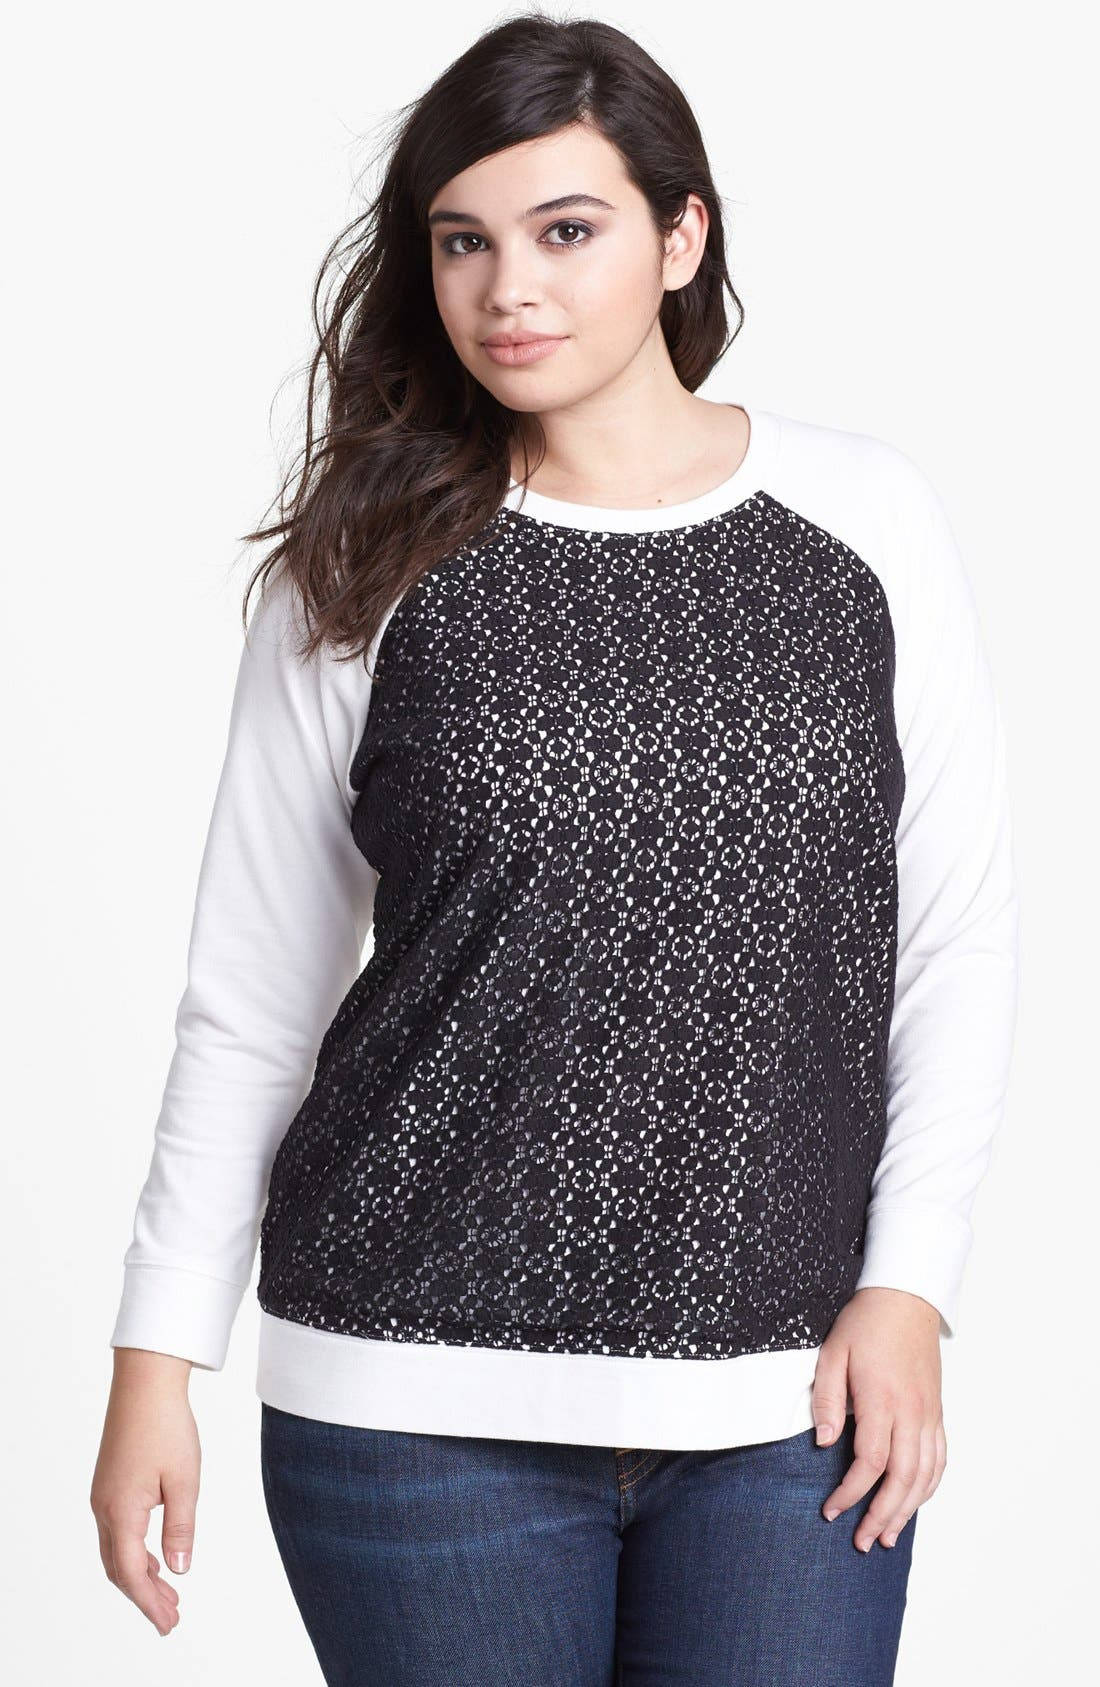 Main Image - Two by Vince Camuto Lace Panel Sweatshirt (Plus Size)